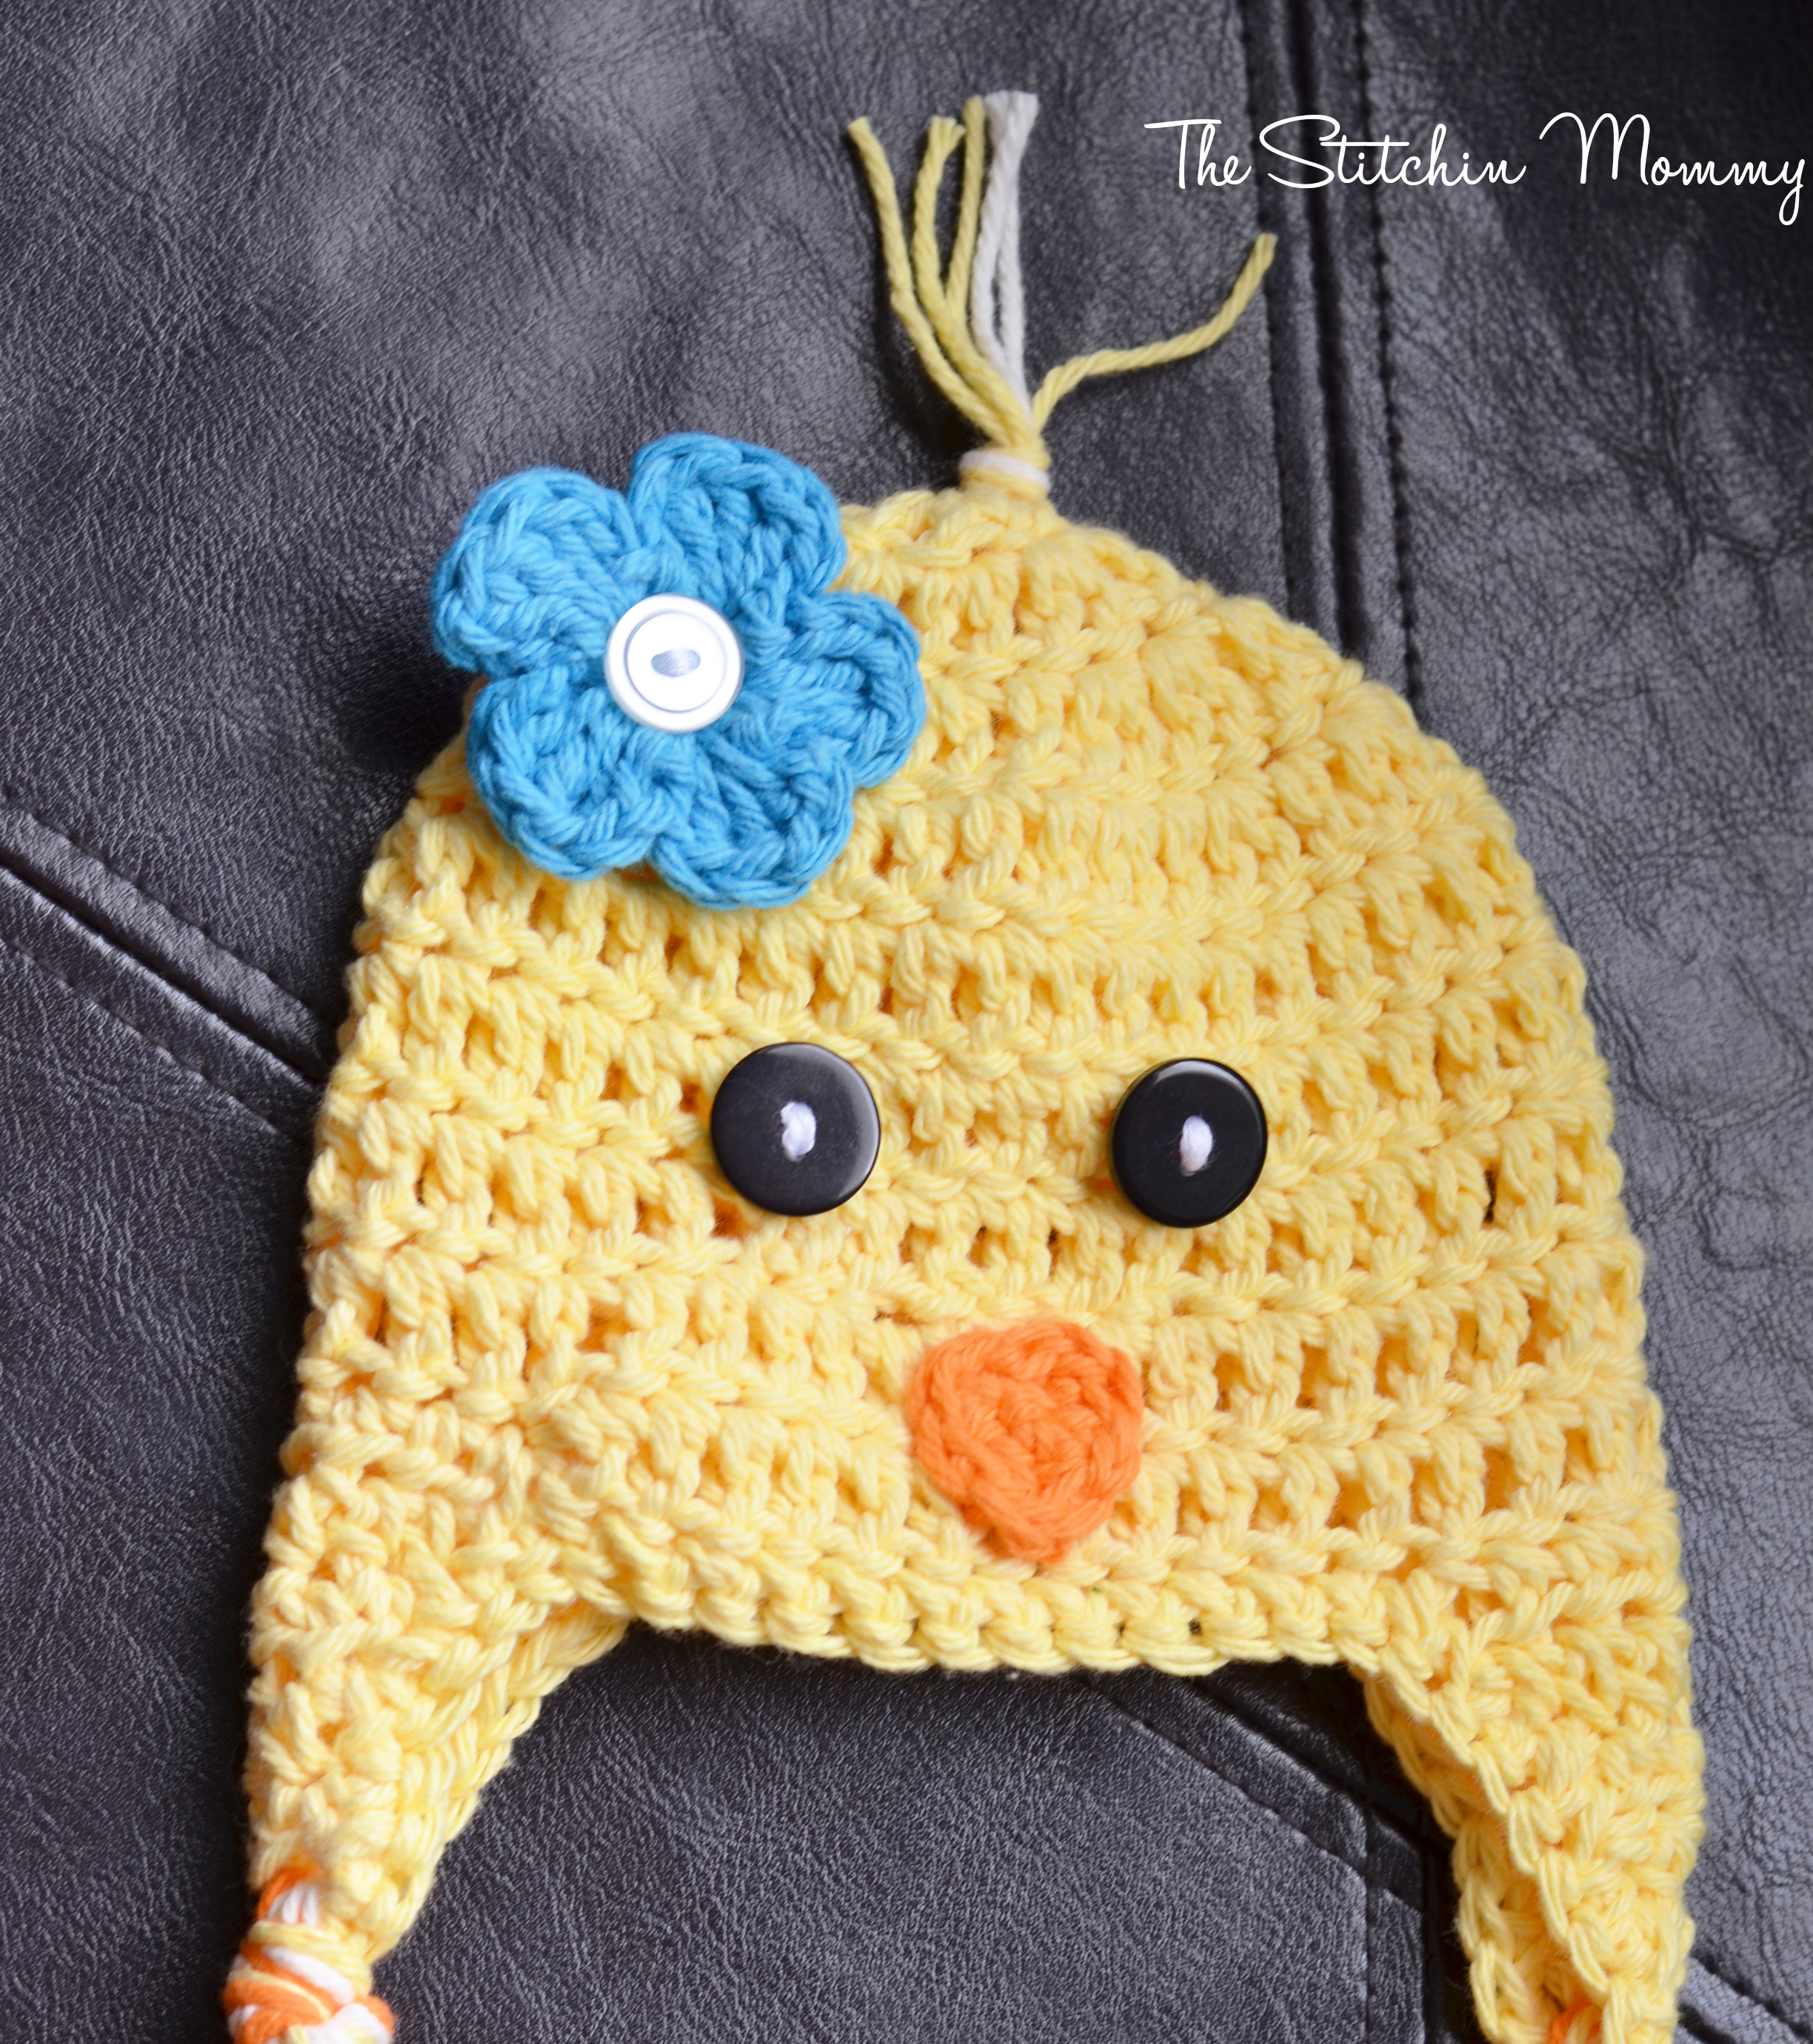 Free Crochet Patterns For Easter Hats : Spring Chick Hat - Free Crochet Pattern - The Stitchin Mommy